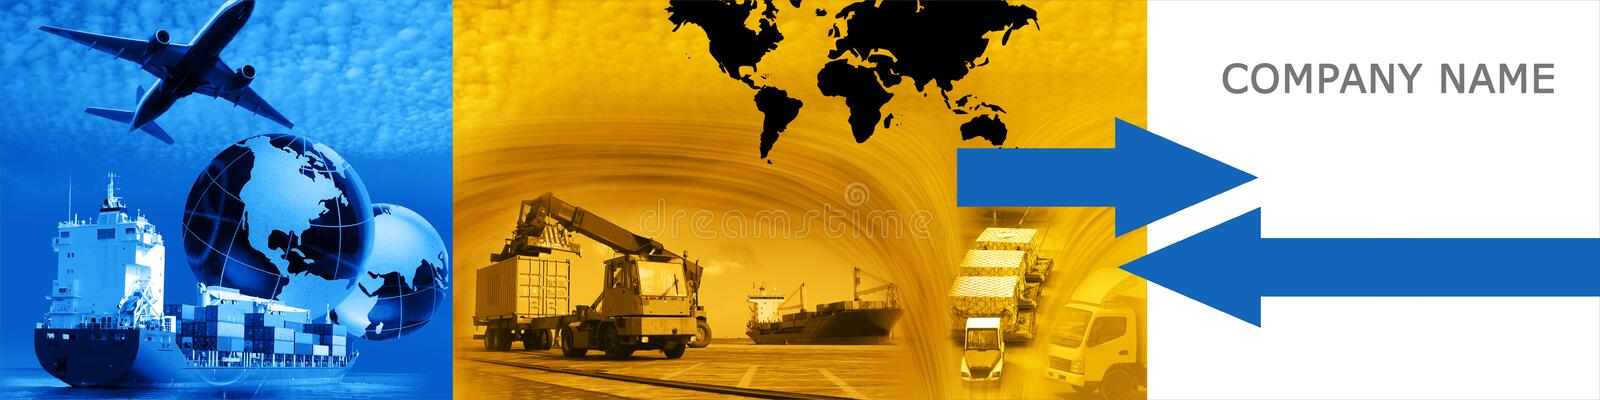 Freight template 2010 version 4 stock illustration